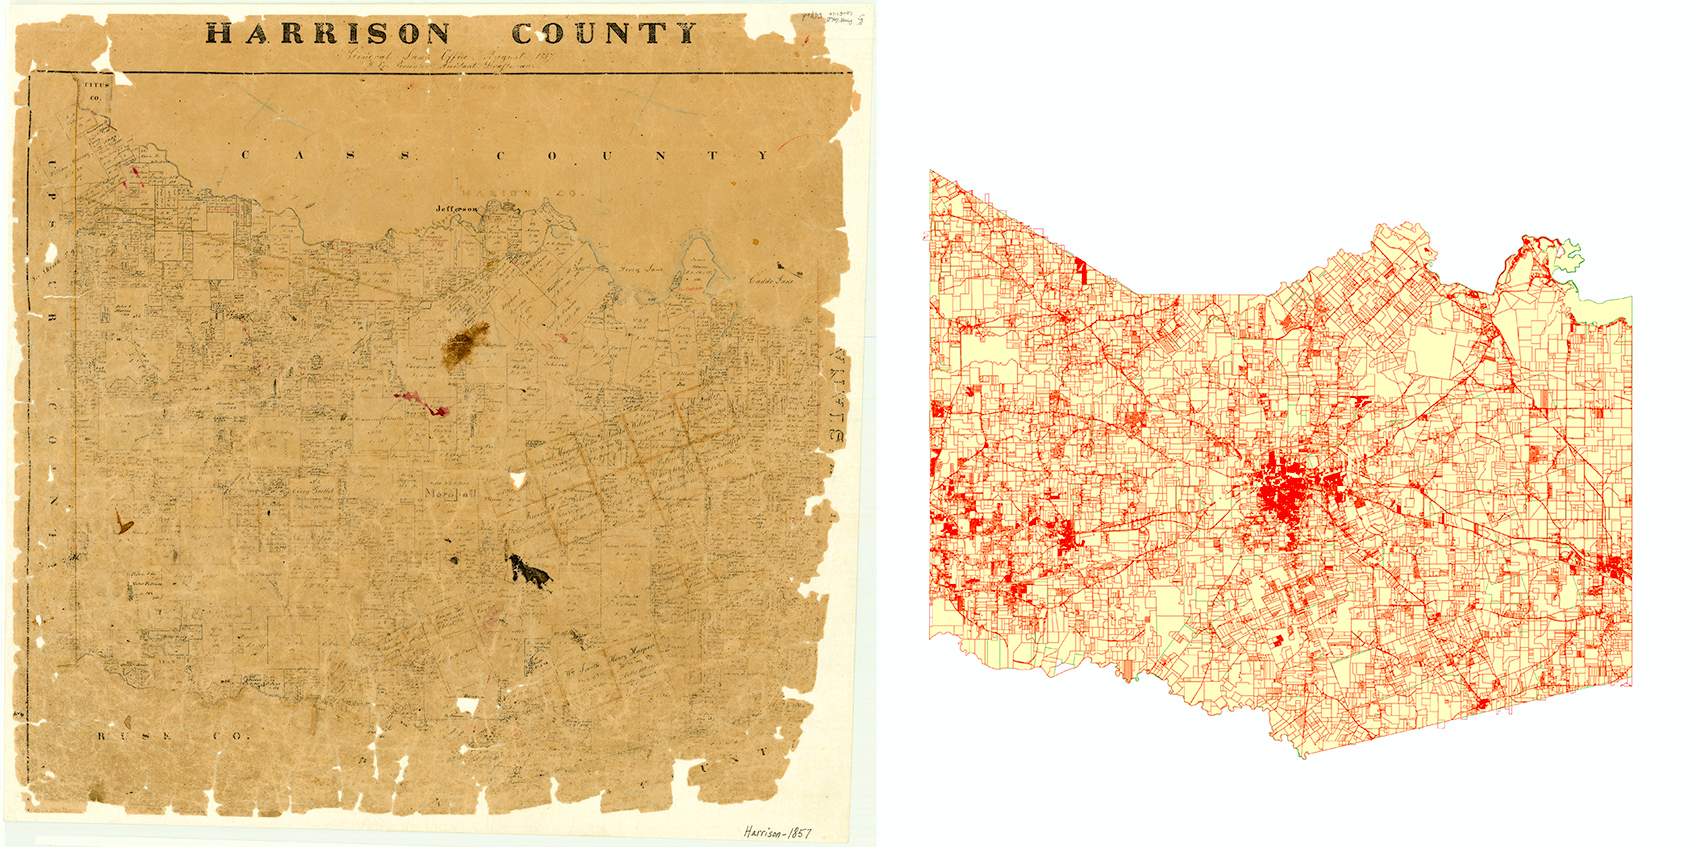 Harrison County Map, 1857 & 2015